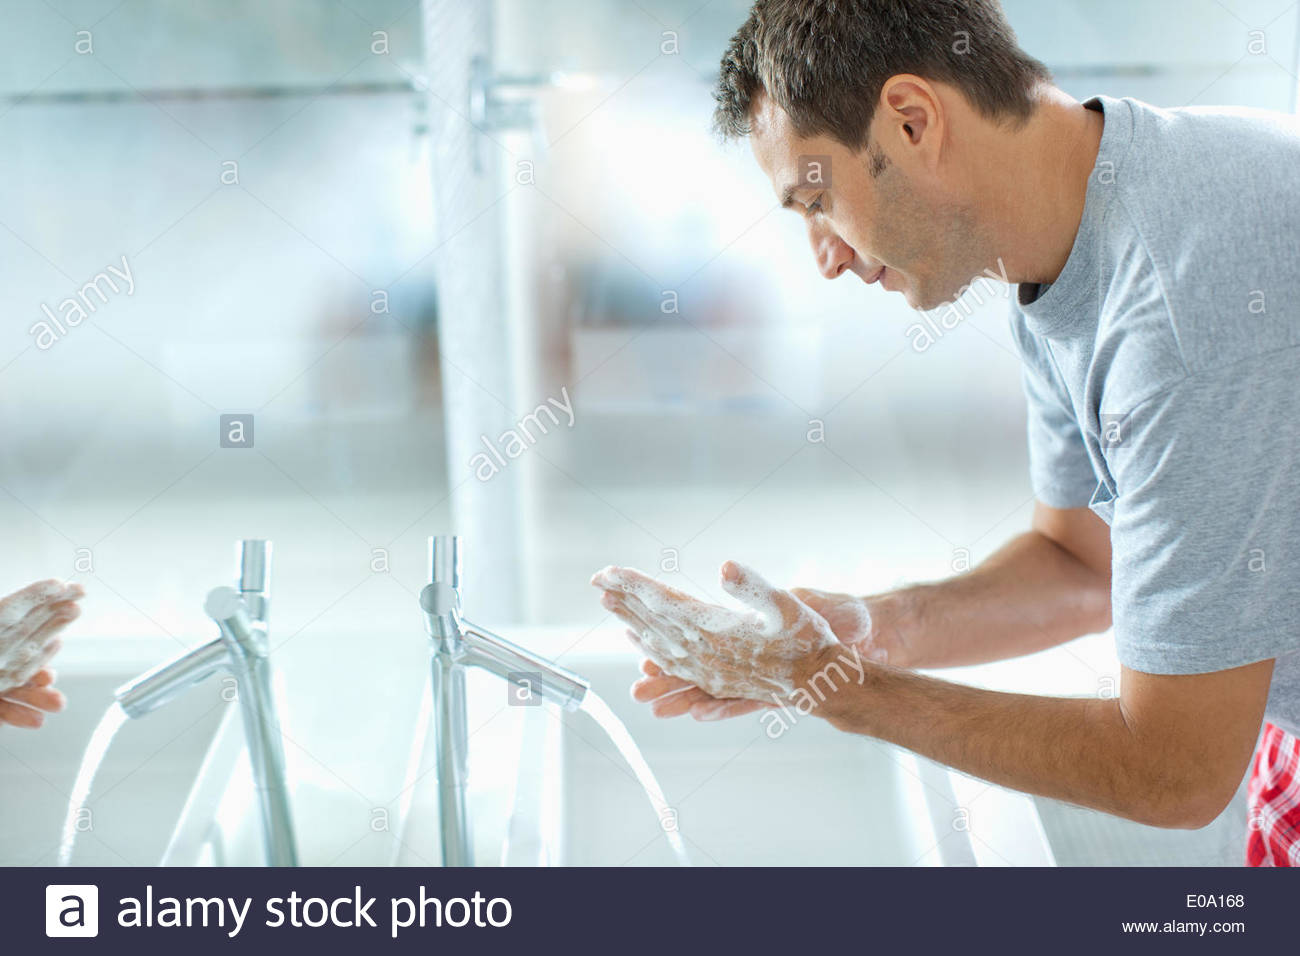 Man washing hands in the bathroom - Stock Image